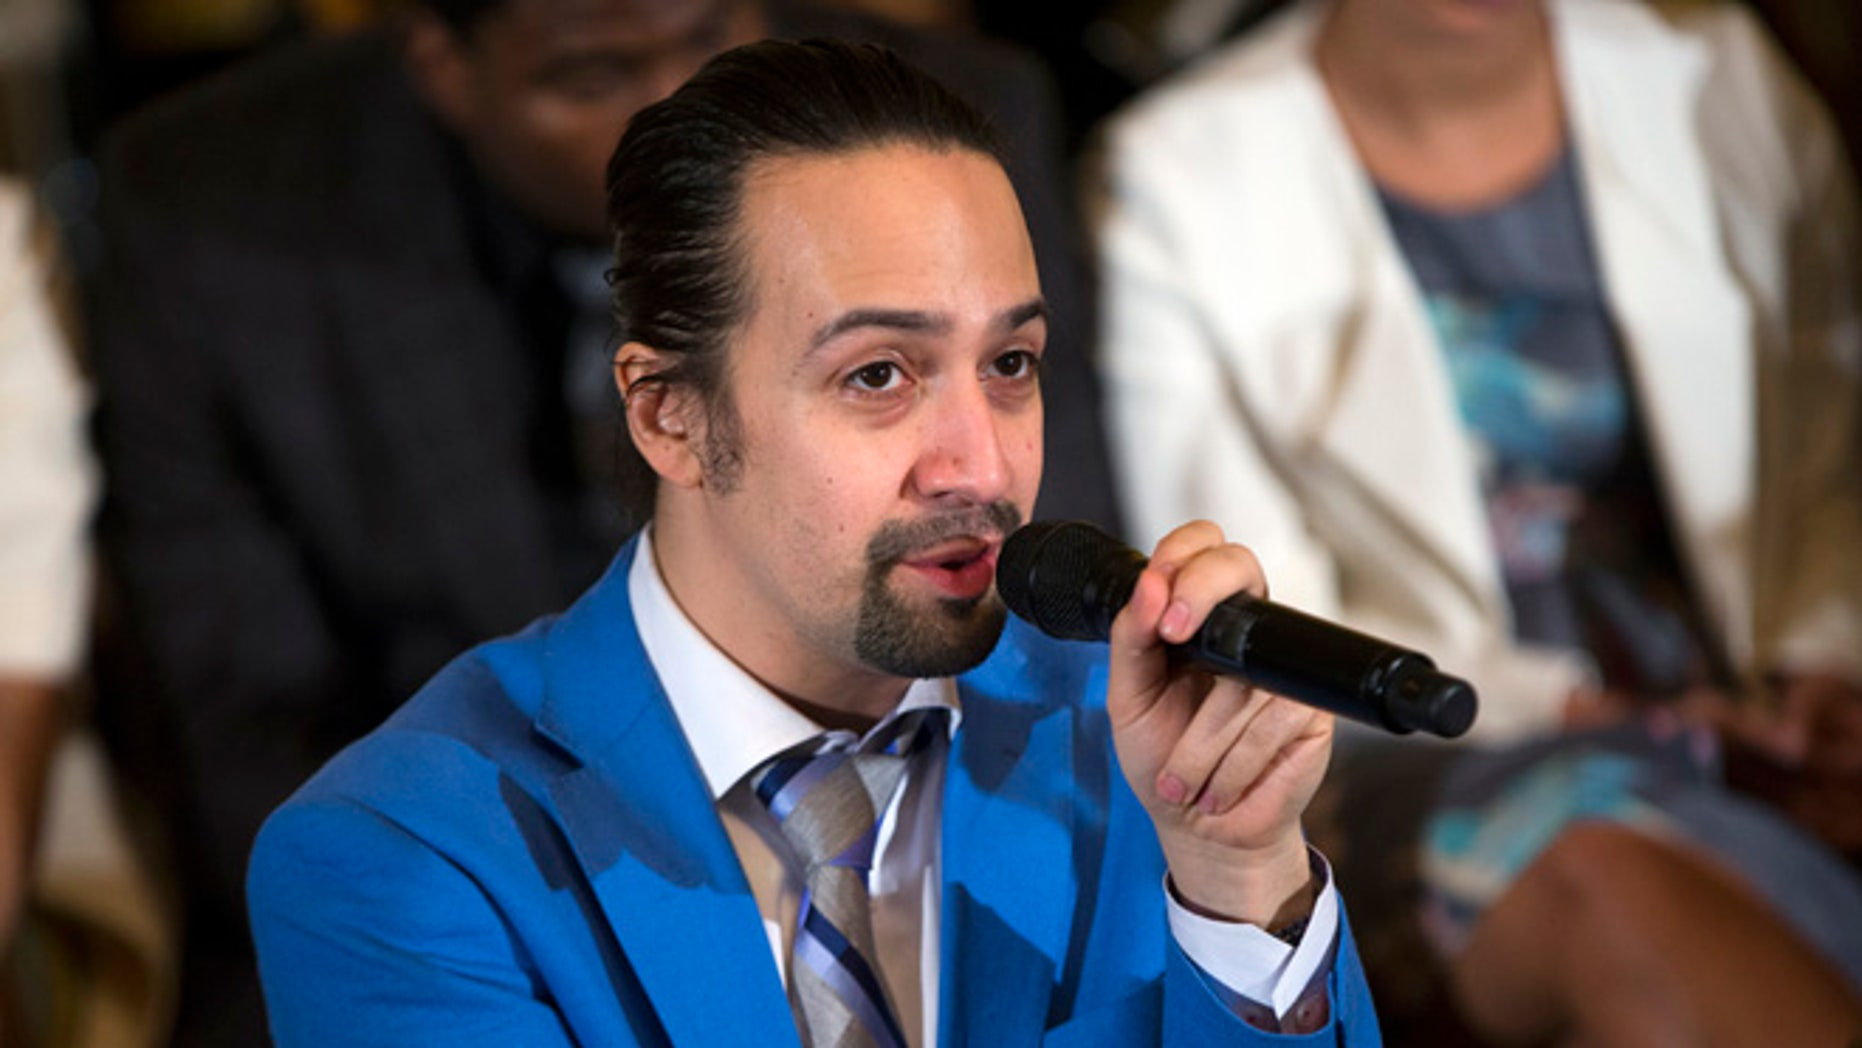 Lin-Manuel Miranda in the East Room of the White House, on Monday, March 14, 2016.